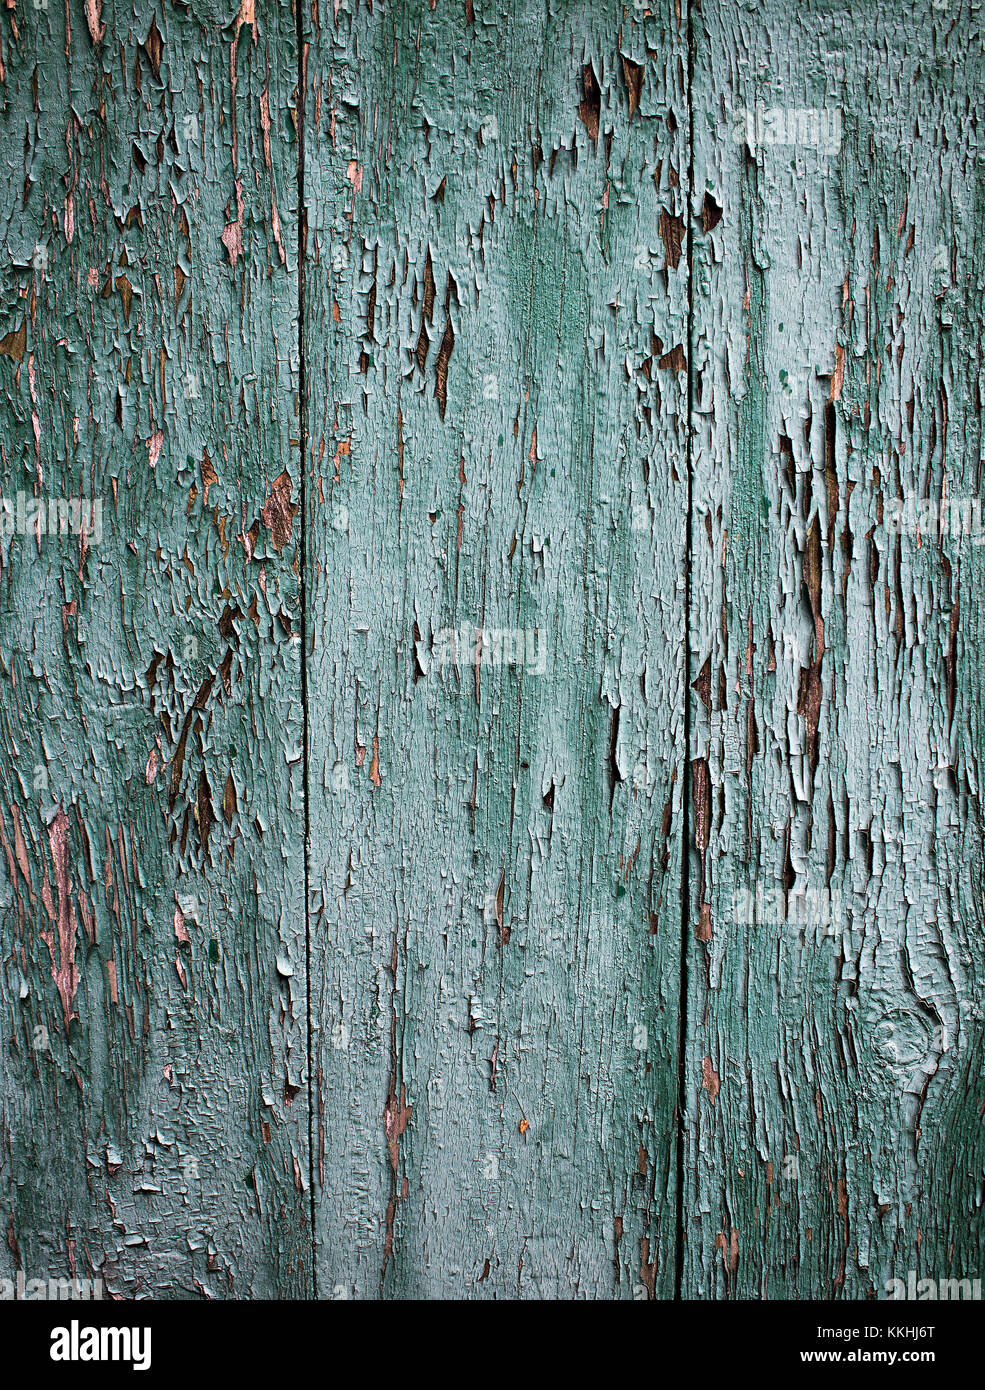 Background of boards painted in green. Cracked green paint on a wooden base. - Stock Image